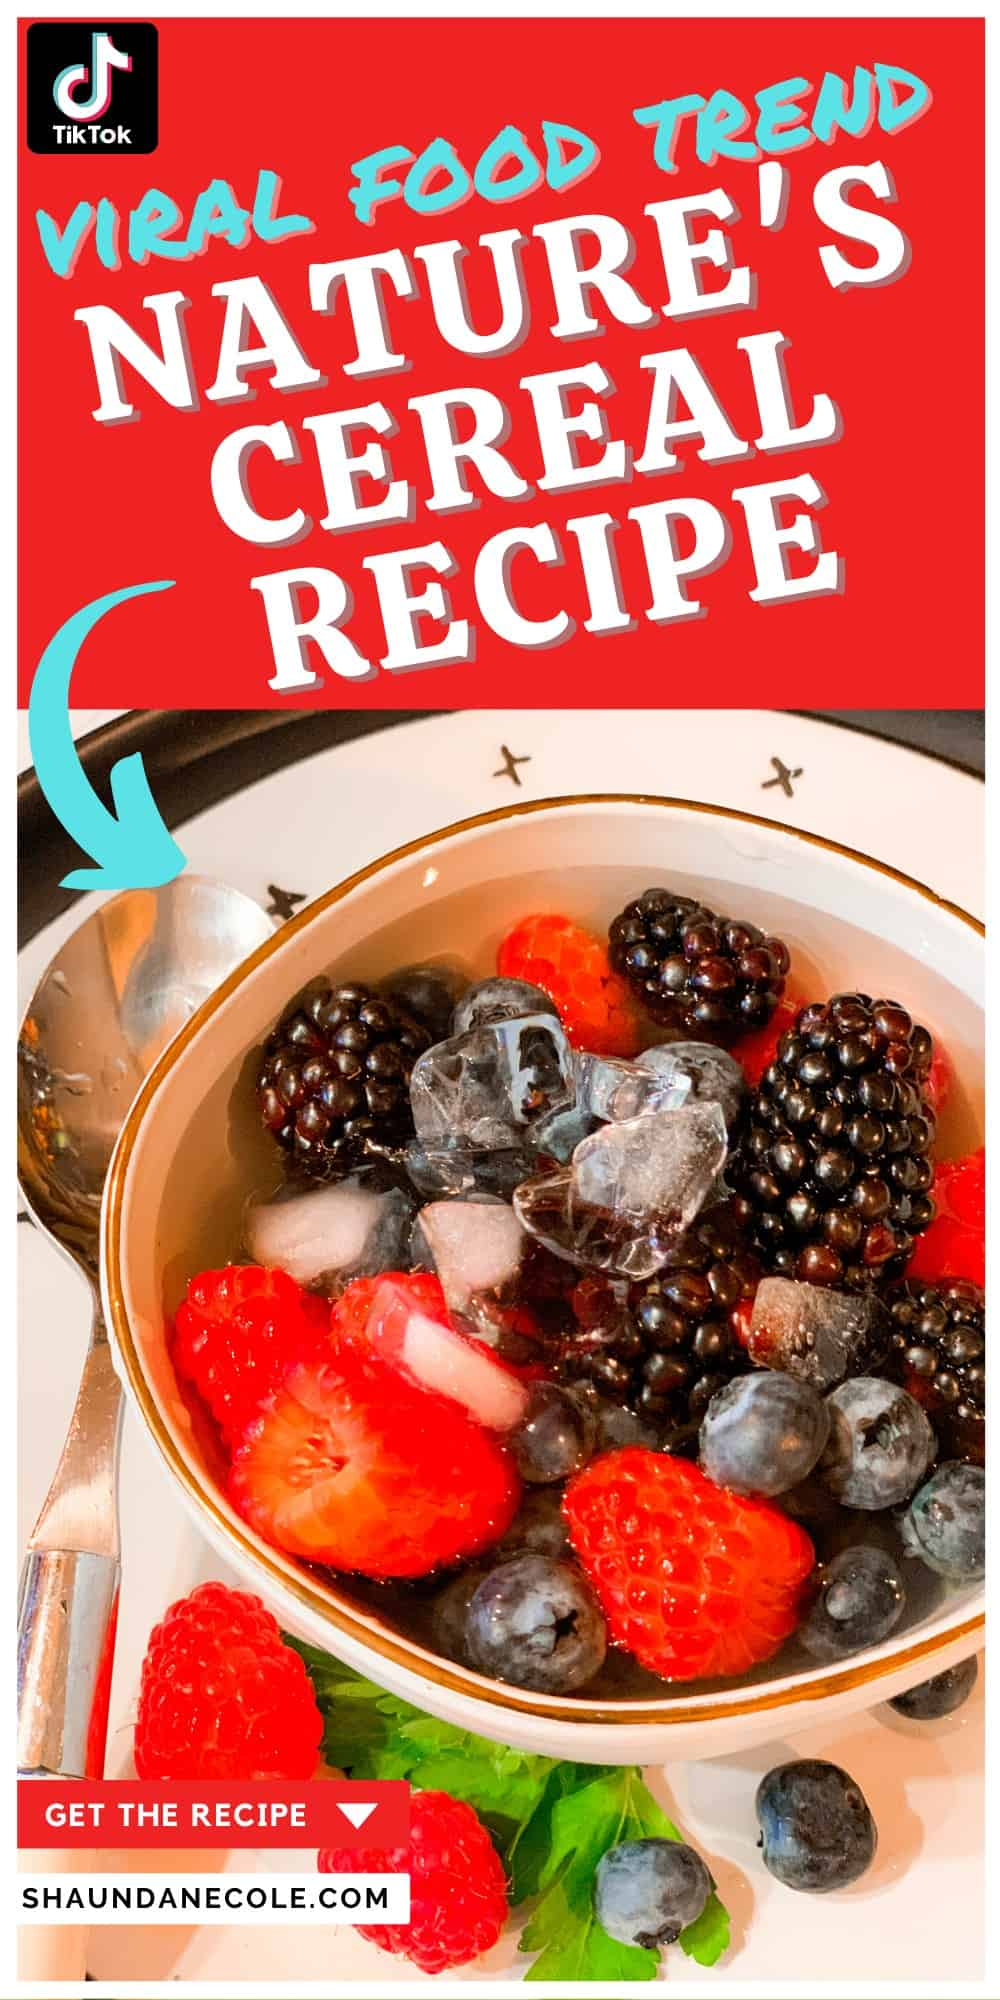 Infographic Picture: Nature's Cereal Recipe- Raspberries, Blueberries & Blackberries In A Bowl Of Coconut Water With Ice & A Spoon. How To Make Nature's Cereal Recipe The TikTok Viral Food Trend Video